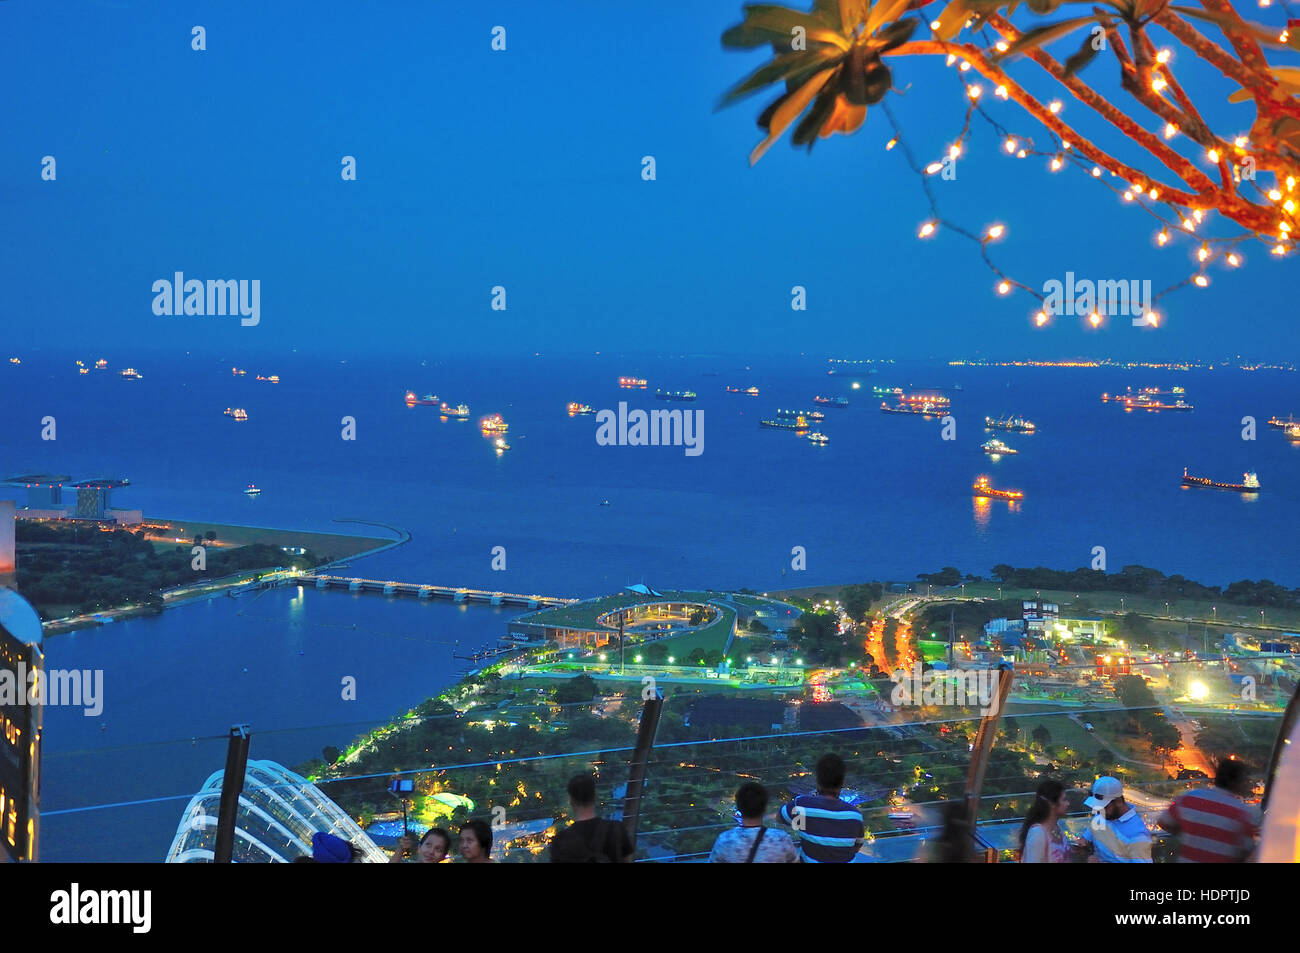 Aerial view from Sky Bar Singapore Marina Sands, looking at the Johore Strait between singapore and malasia - Stock Image